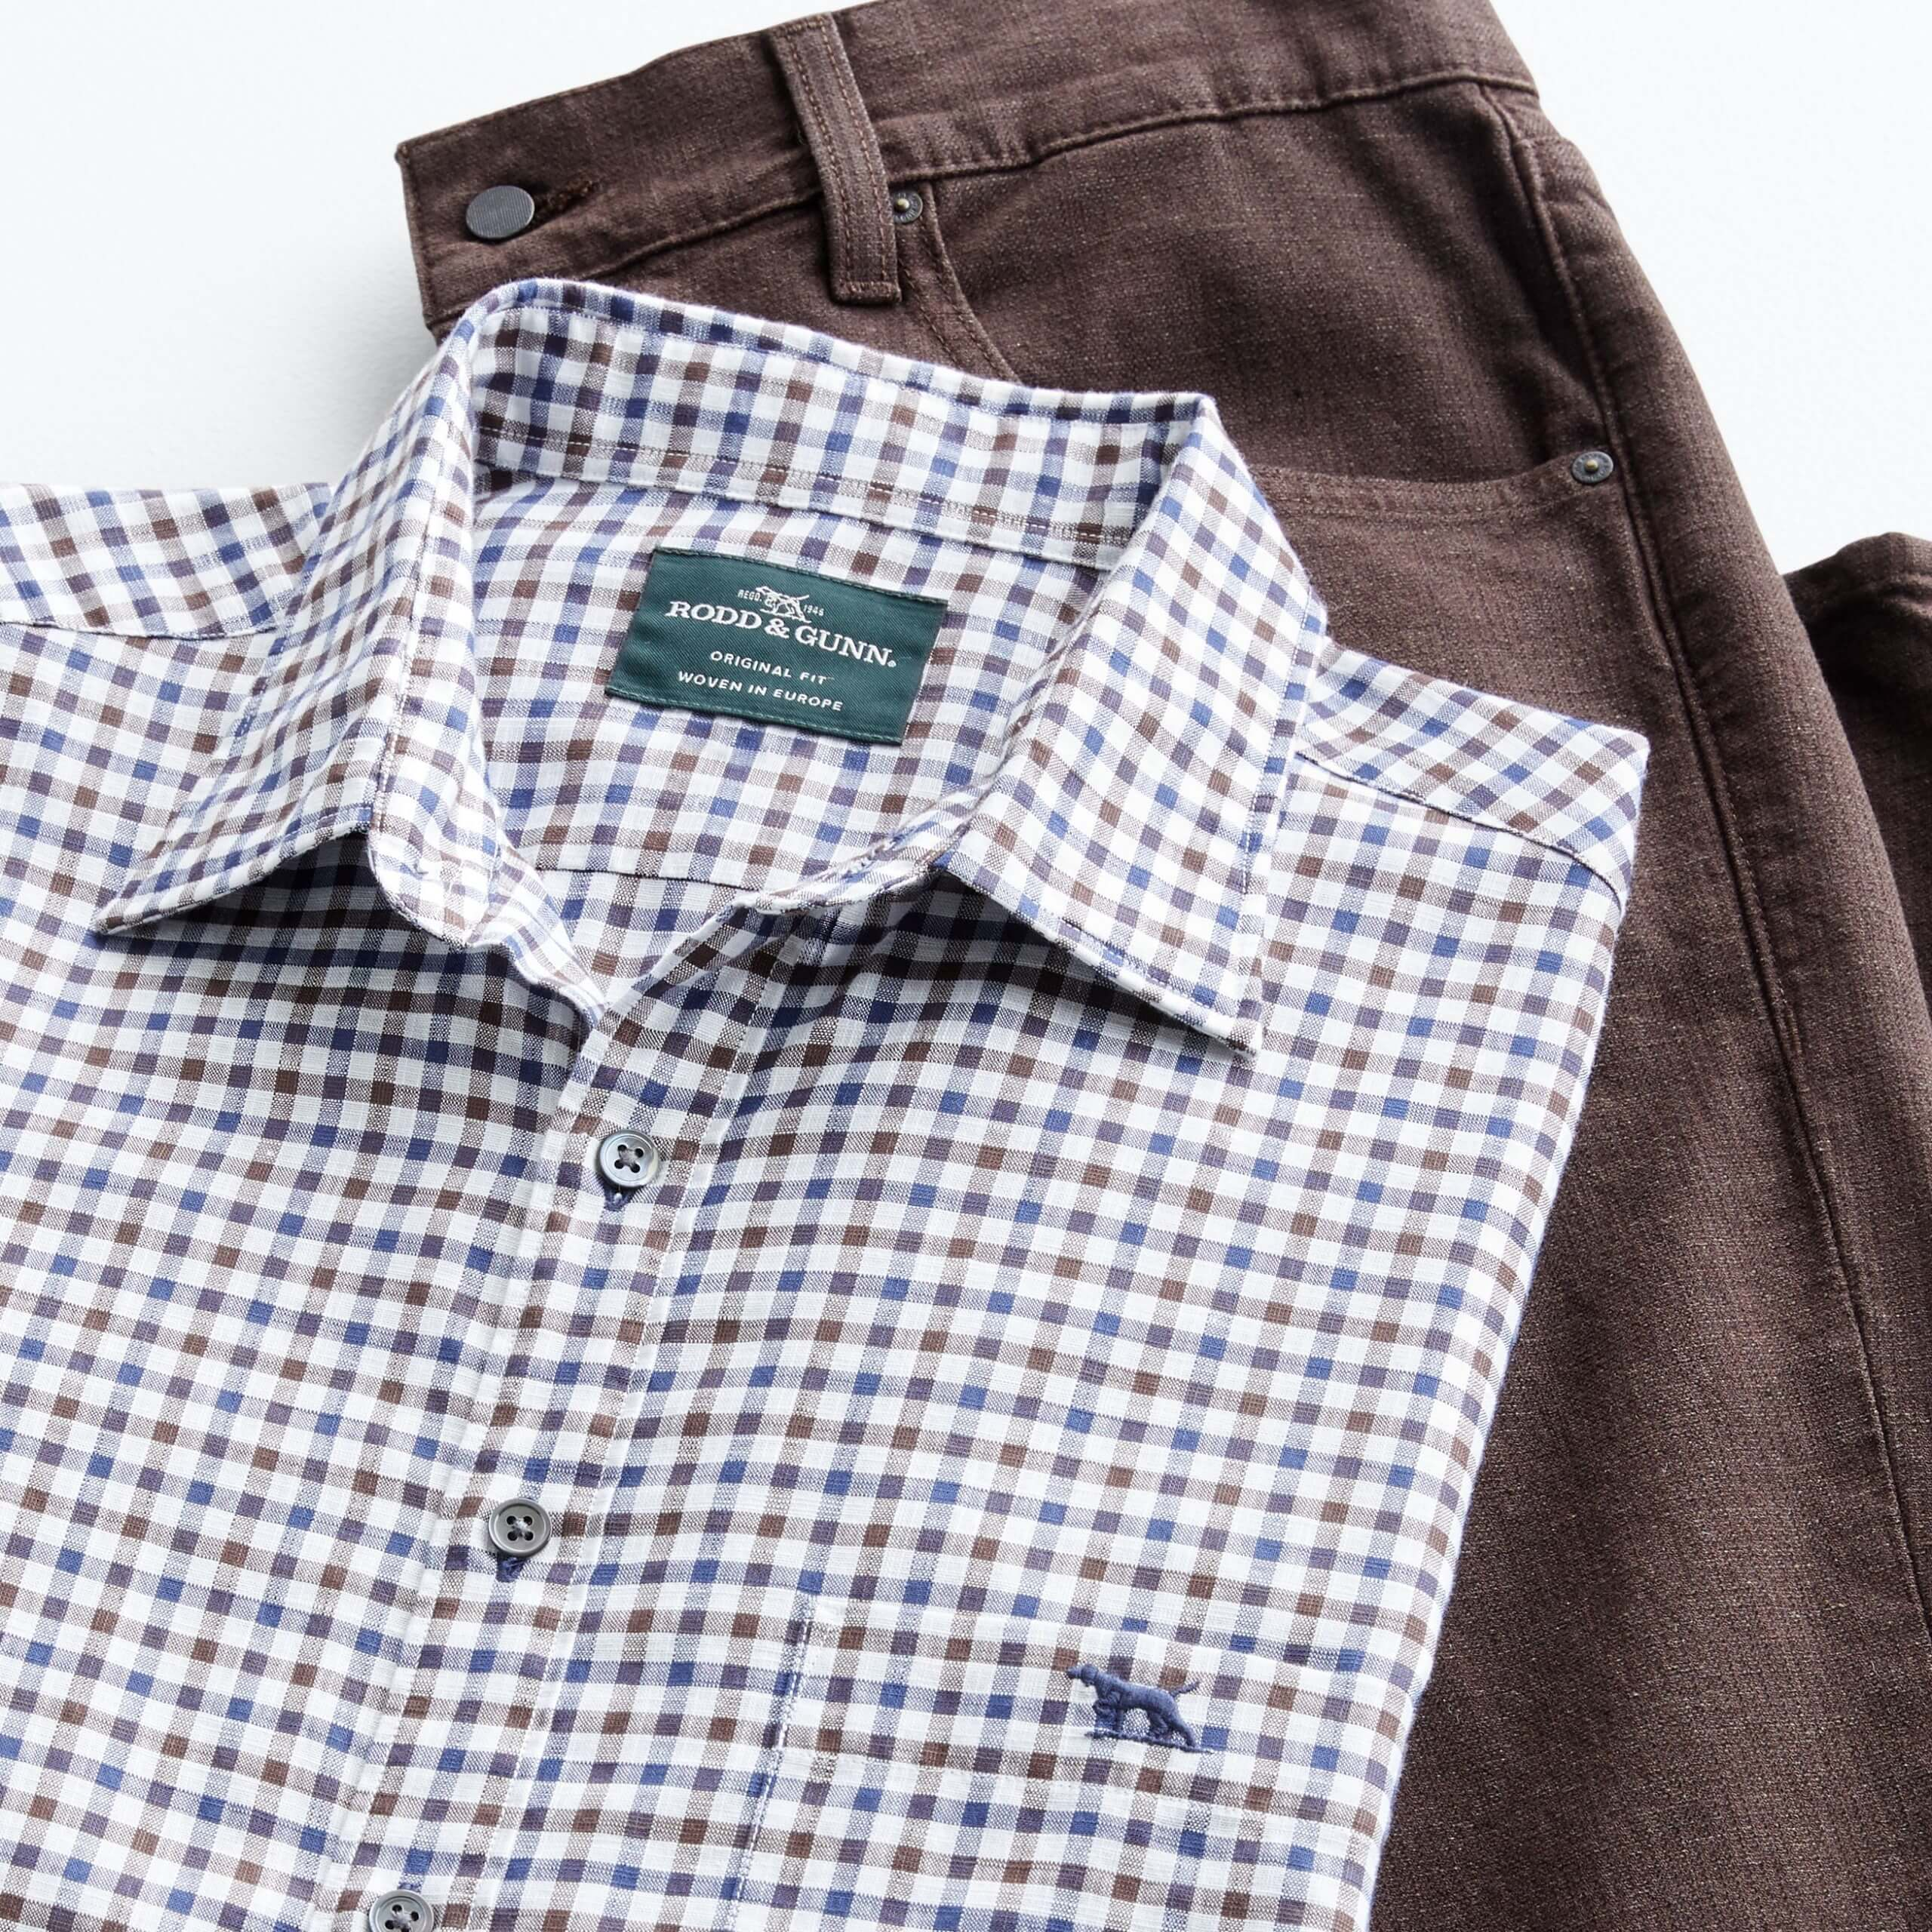 Stitch Fix Men's outfit laydown featuring white, blue and brown check woven shirt and brown pants.